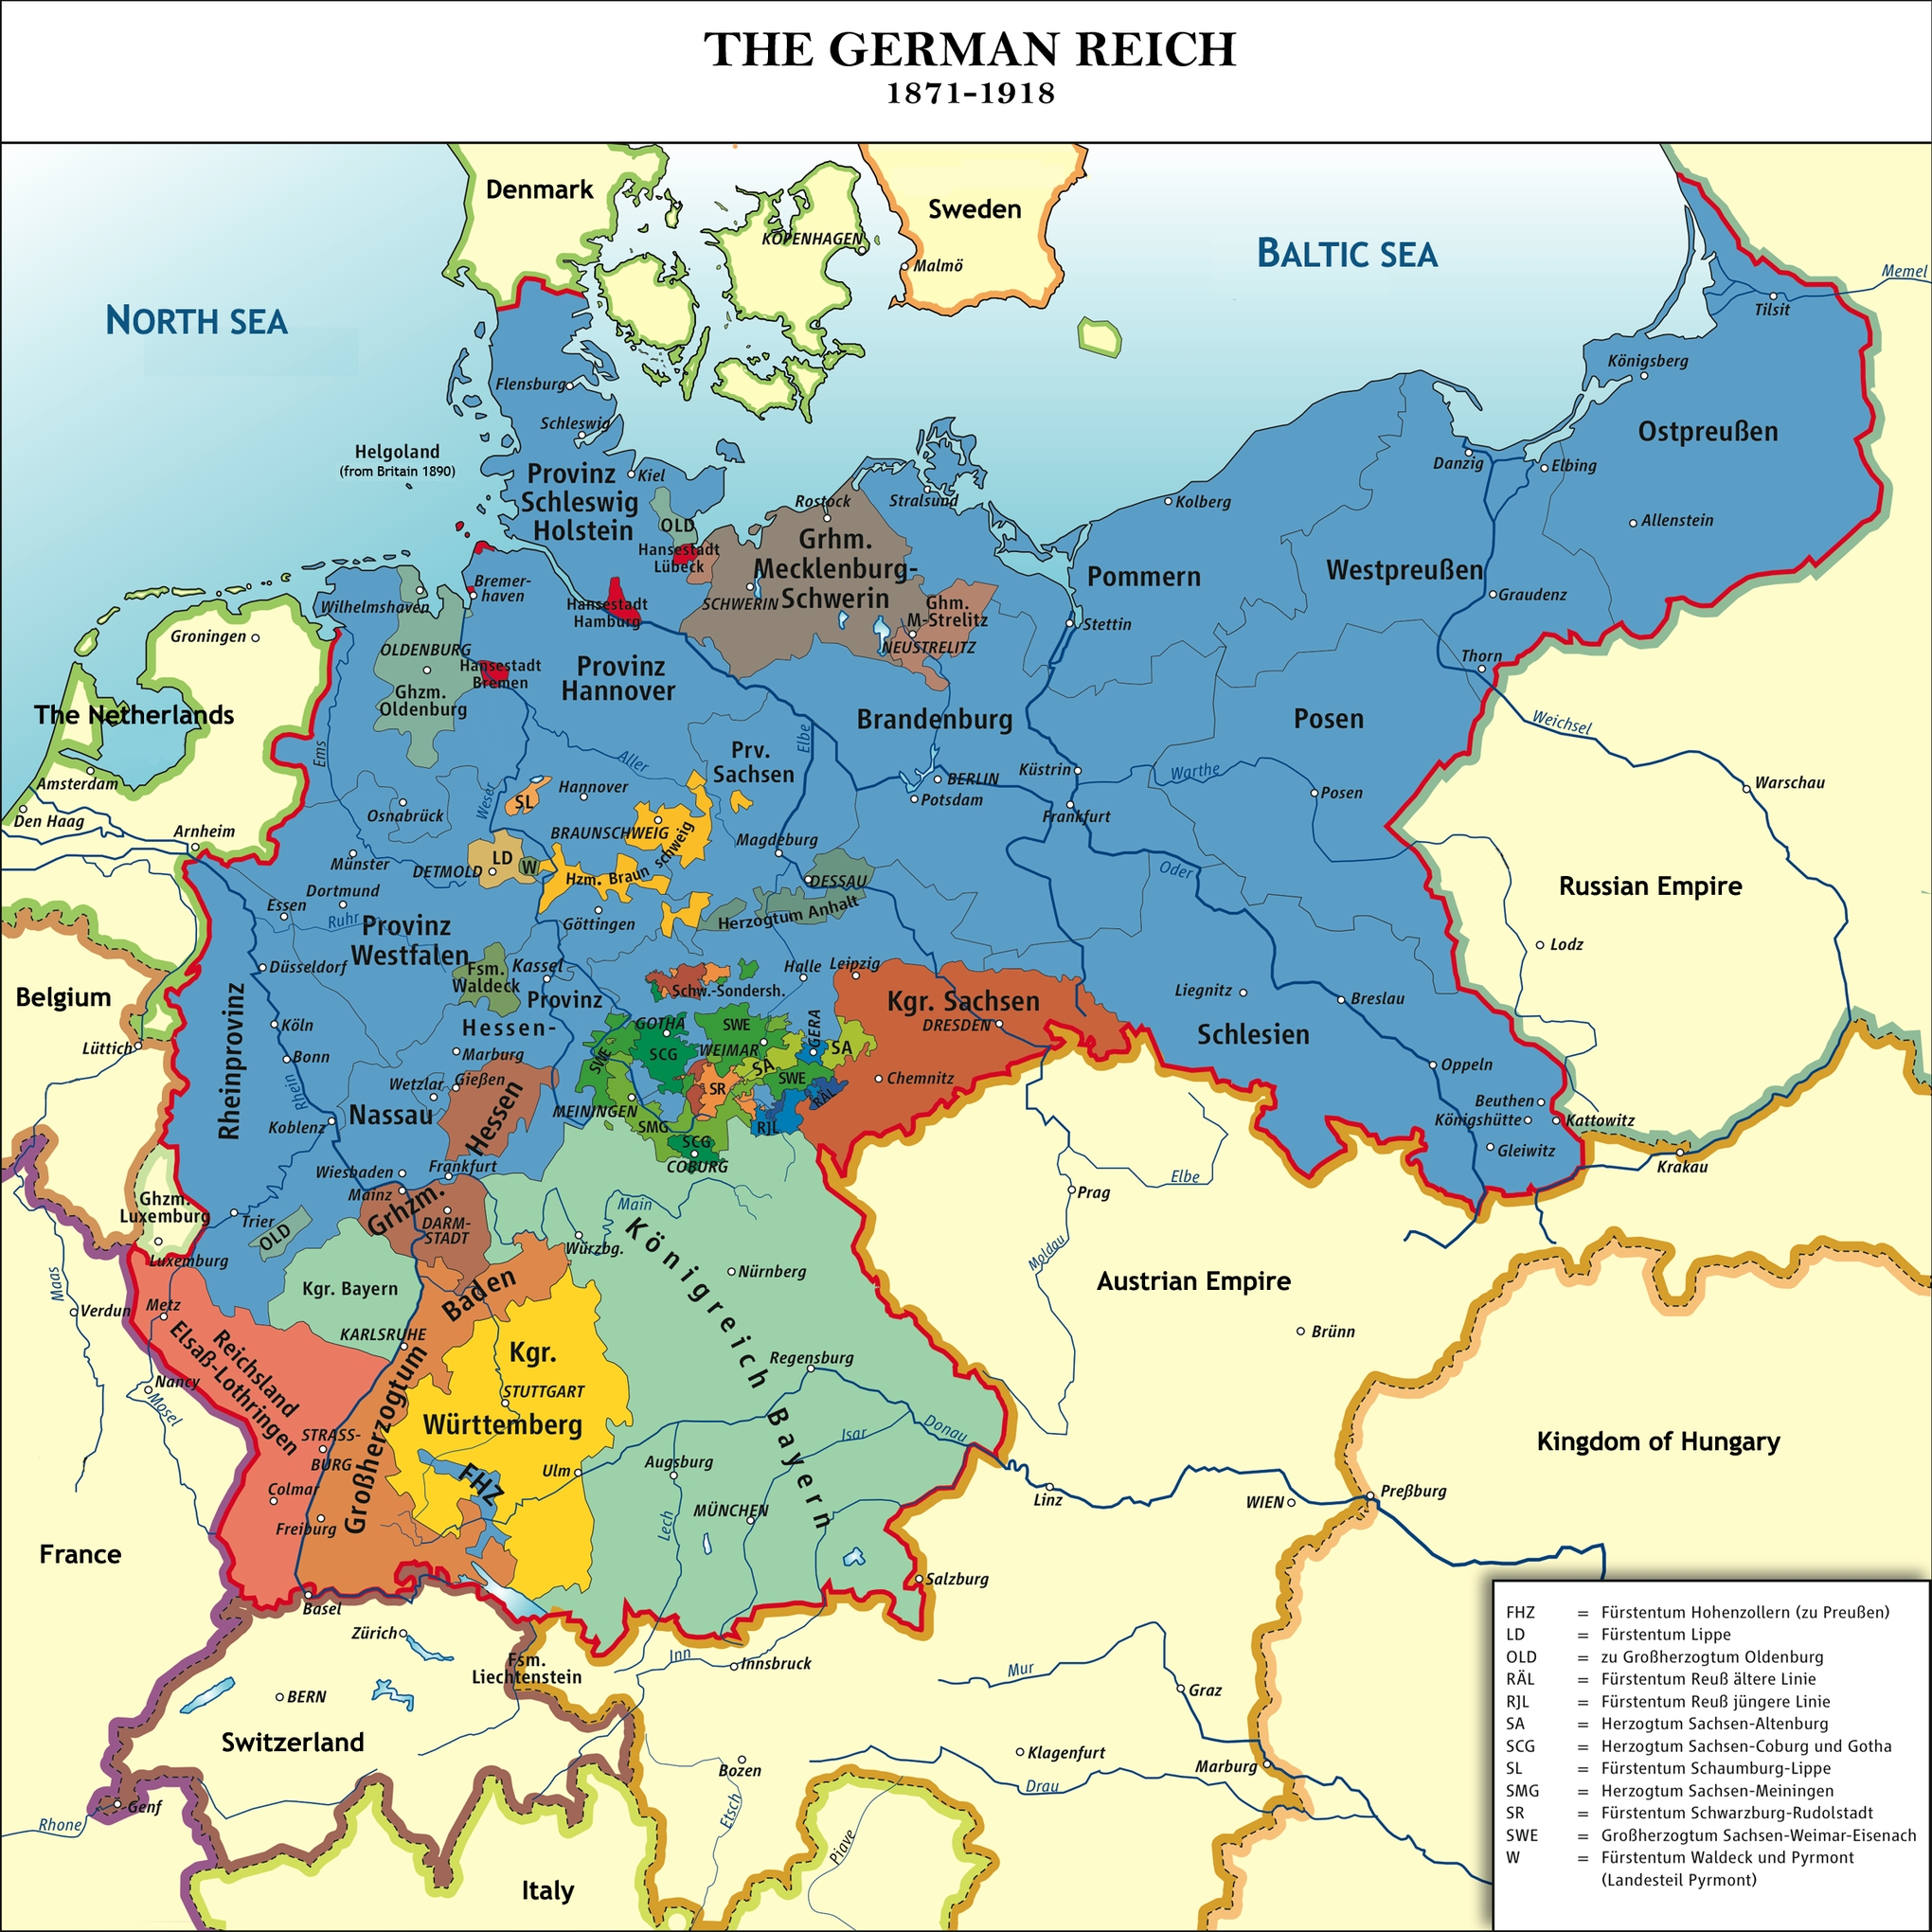 40 Maps That Explain World War I | Vox within Show Germany In World Map